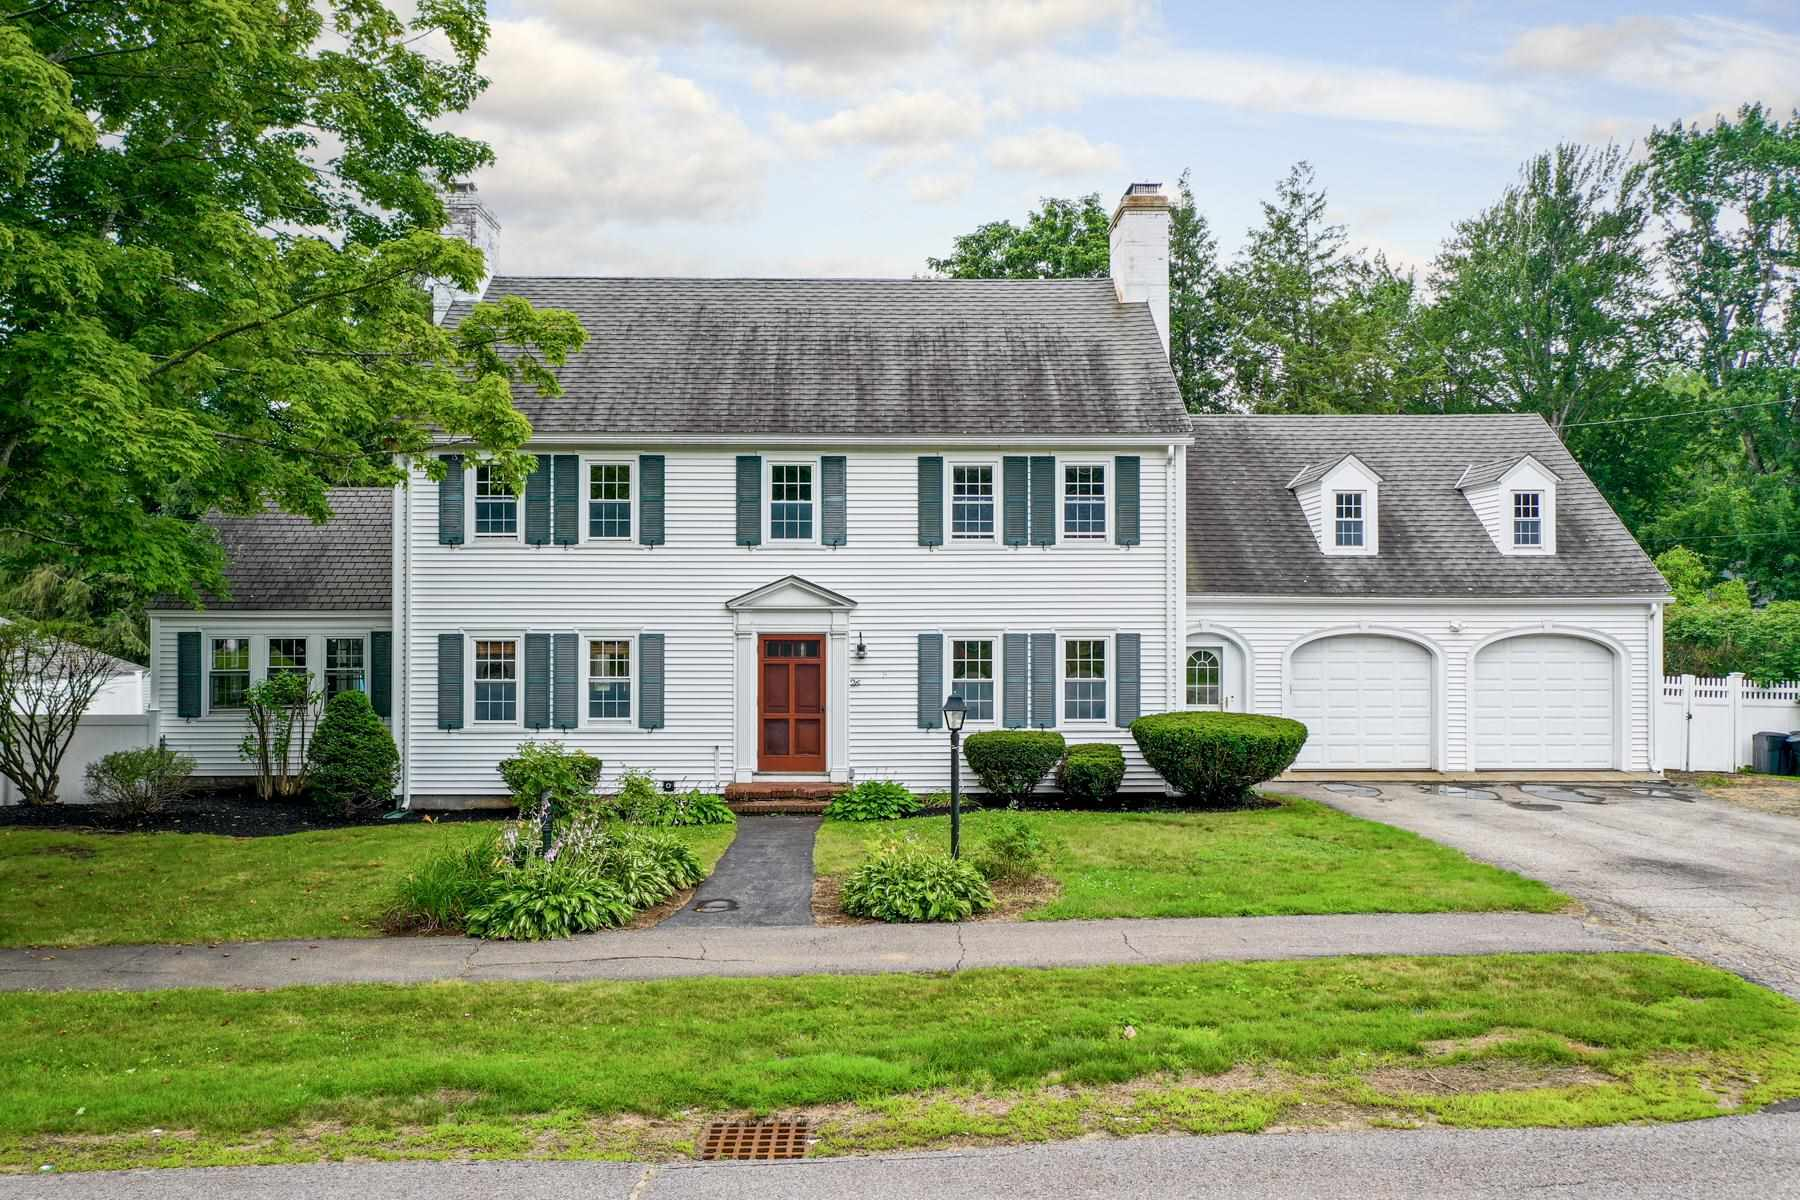 Photo of 26 Orchard Street Laconia NH 03246